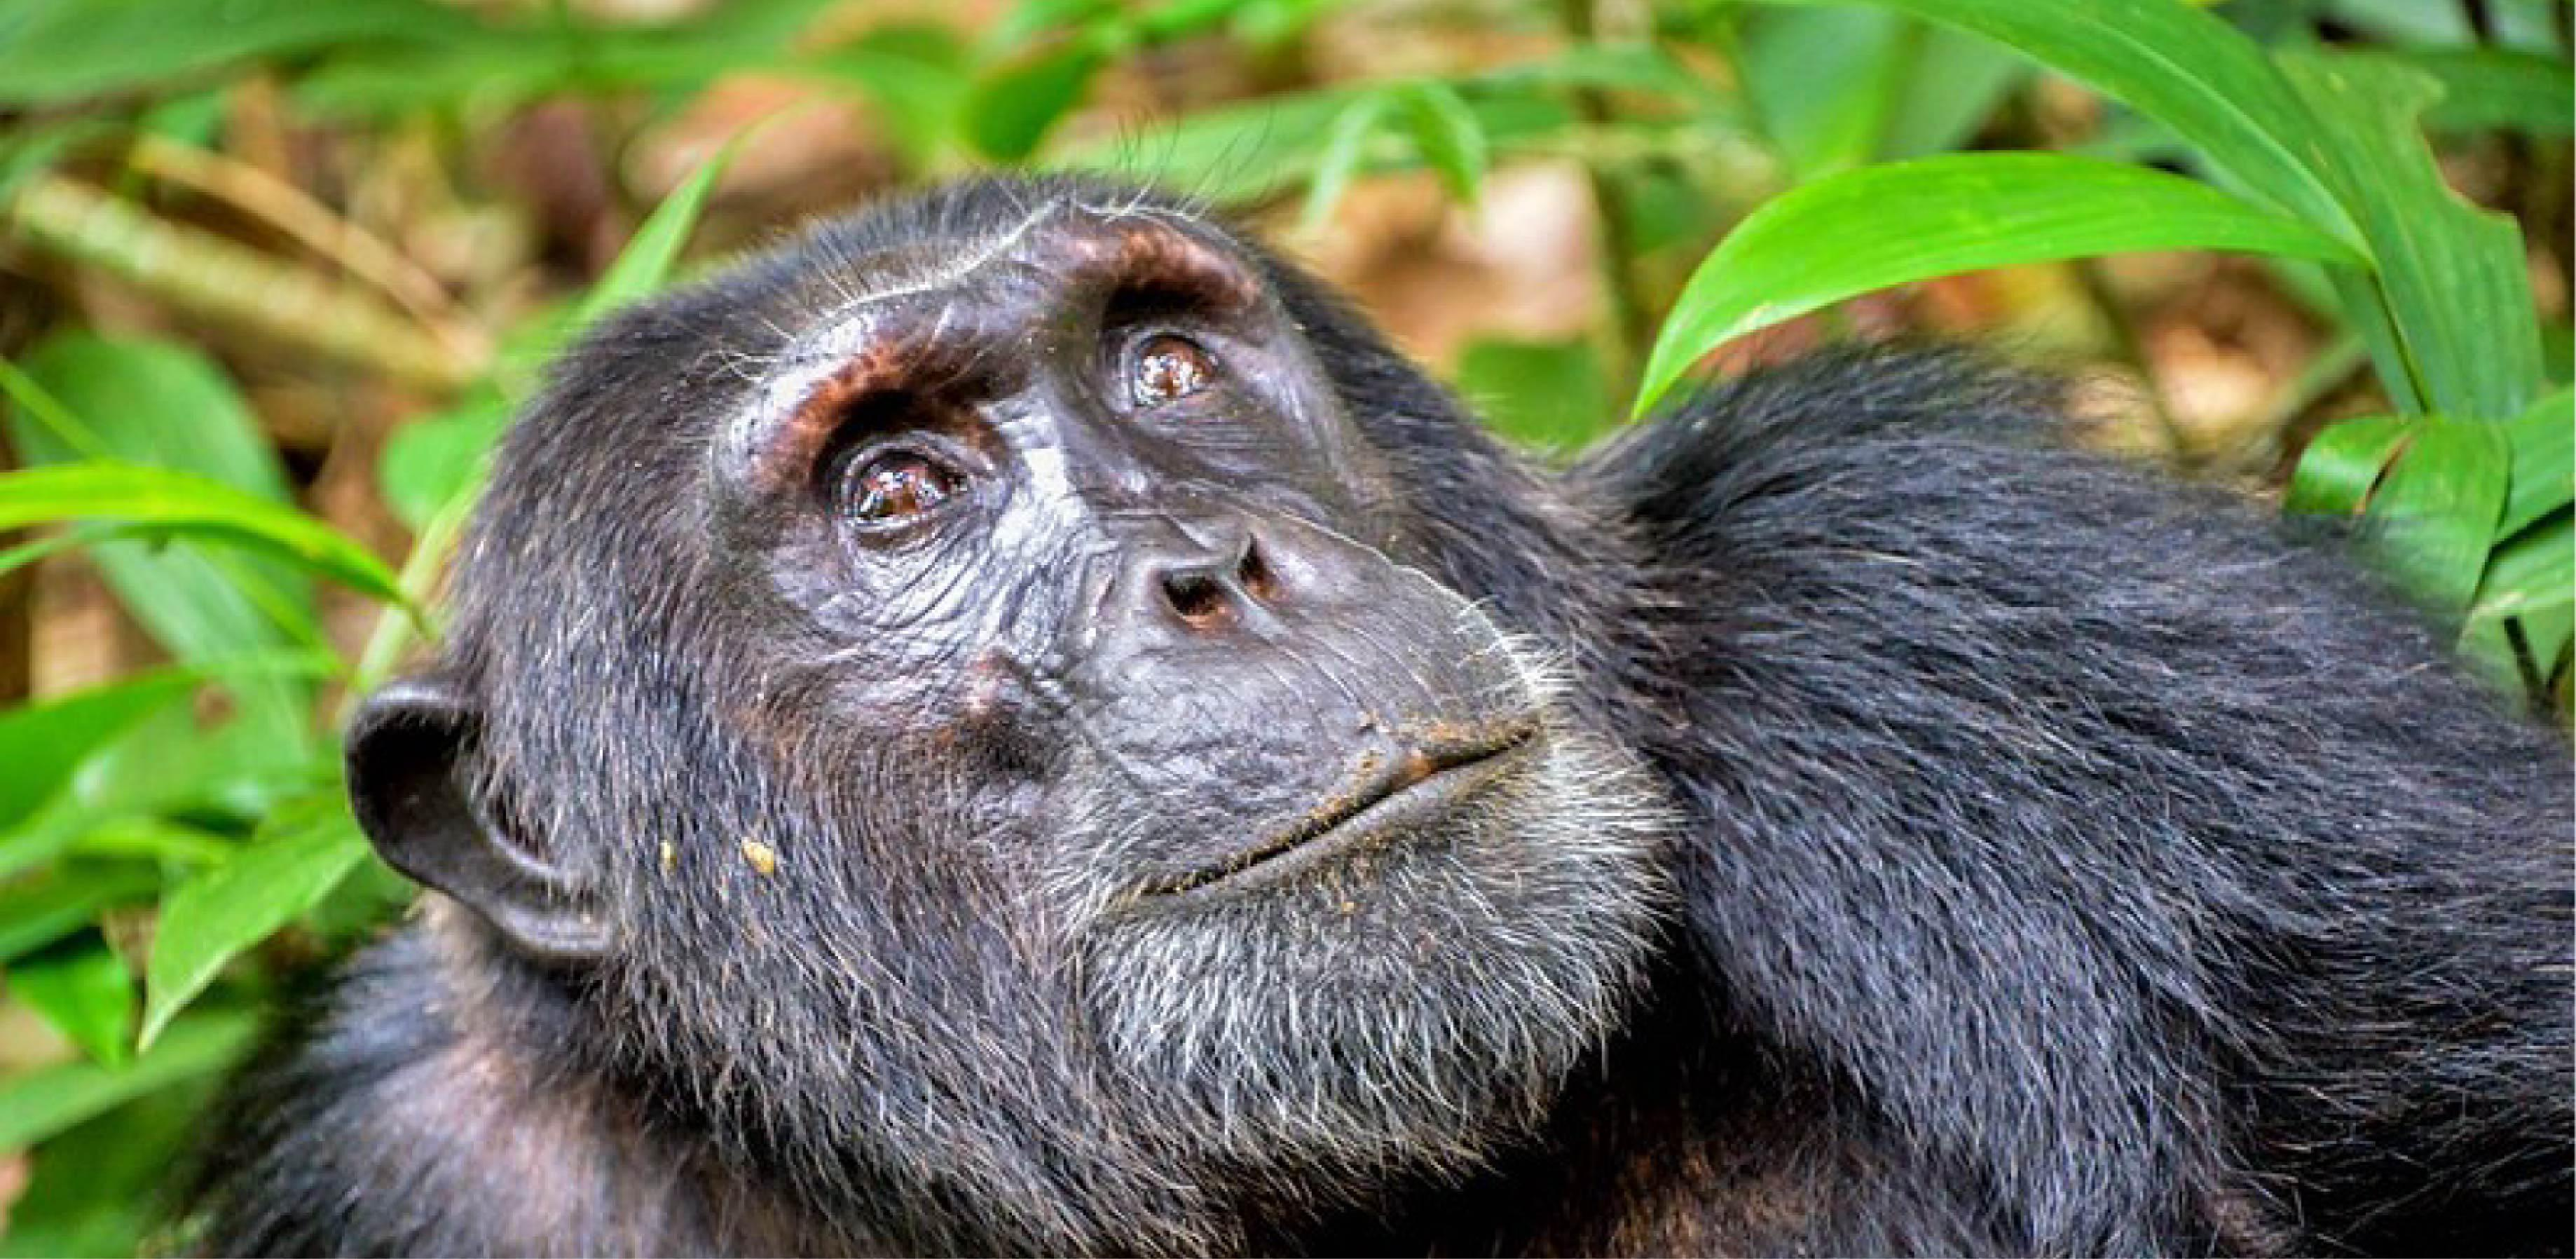 Image of a chimpanzee sat down and looking at the sky